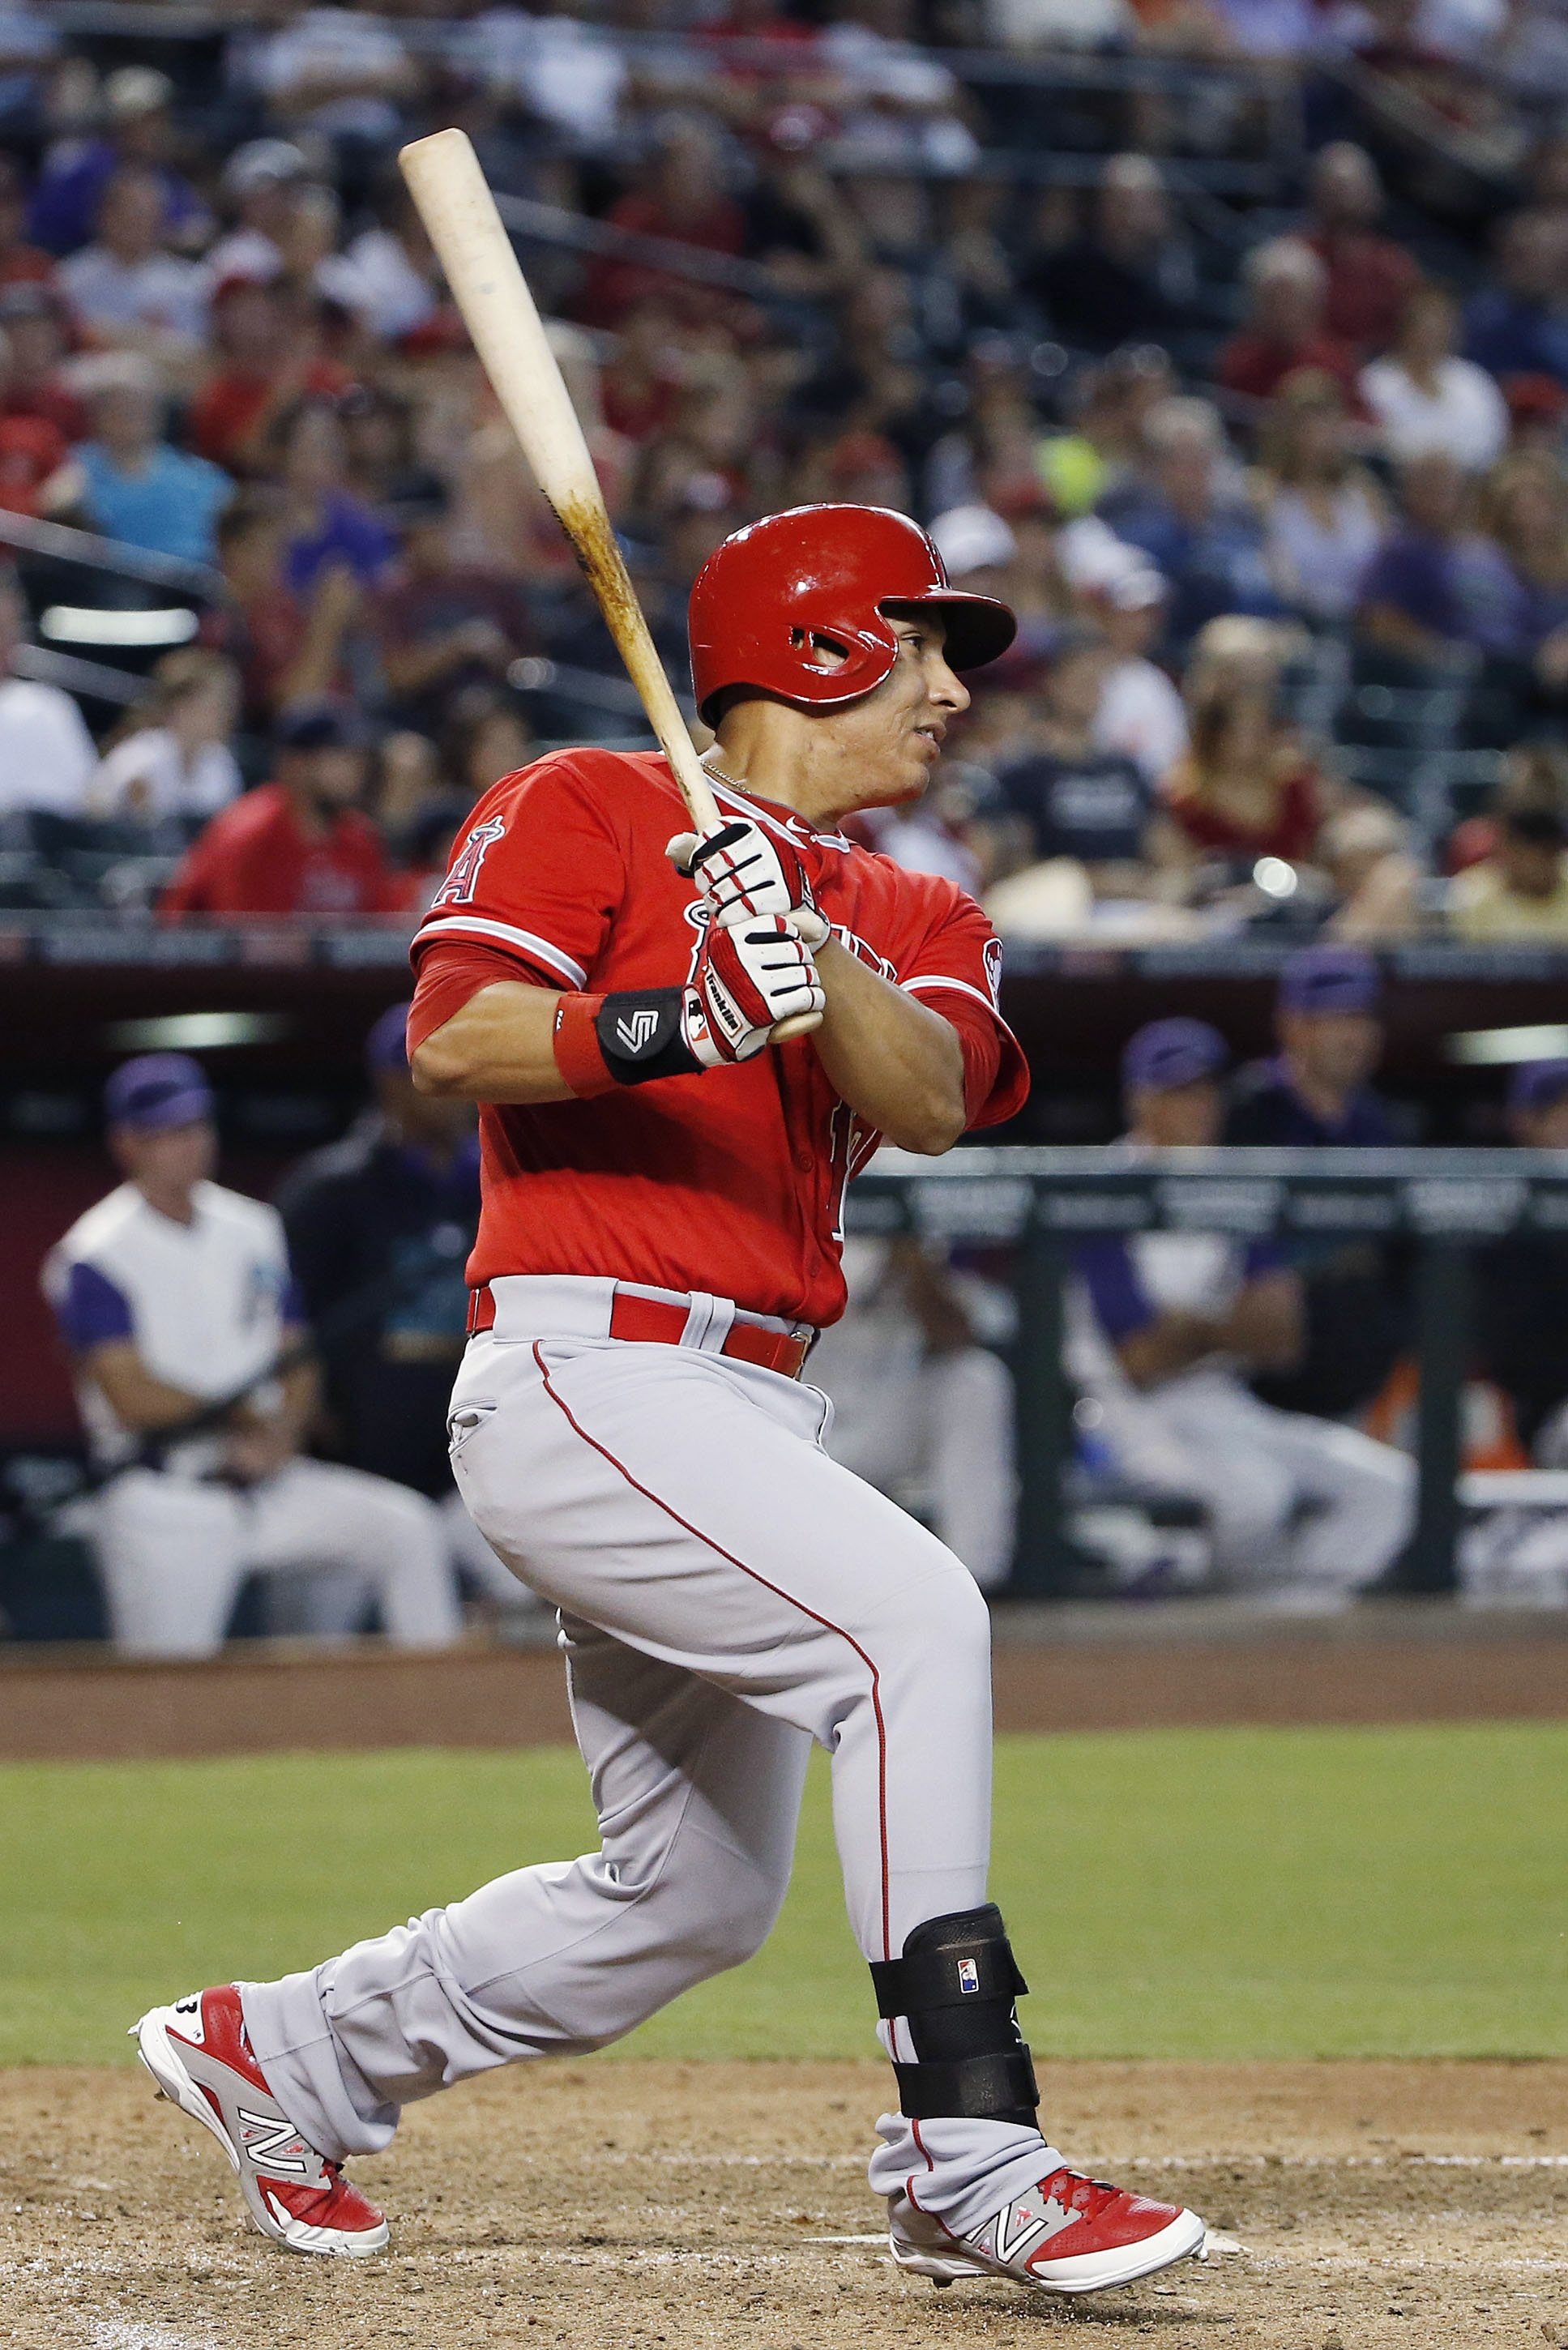 Los Angeles Angels' Efren Navarro follows through with a two-run single against the Arizona Diamondbacks during the sixth inning of a baseball game, Thursday, June 18, 2015, in Phoenix. (AP Photo/Ross D. Franklin)